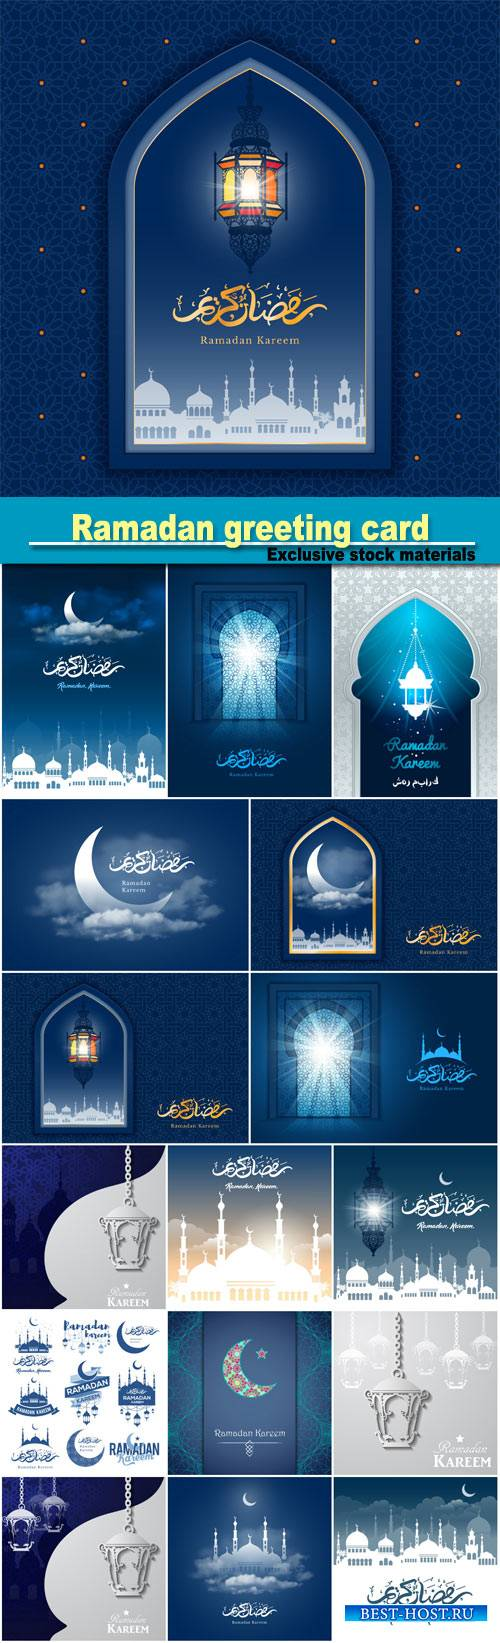 Ramadan greeting card, vector background